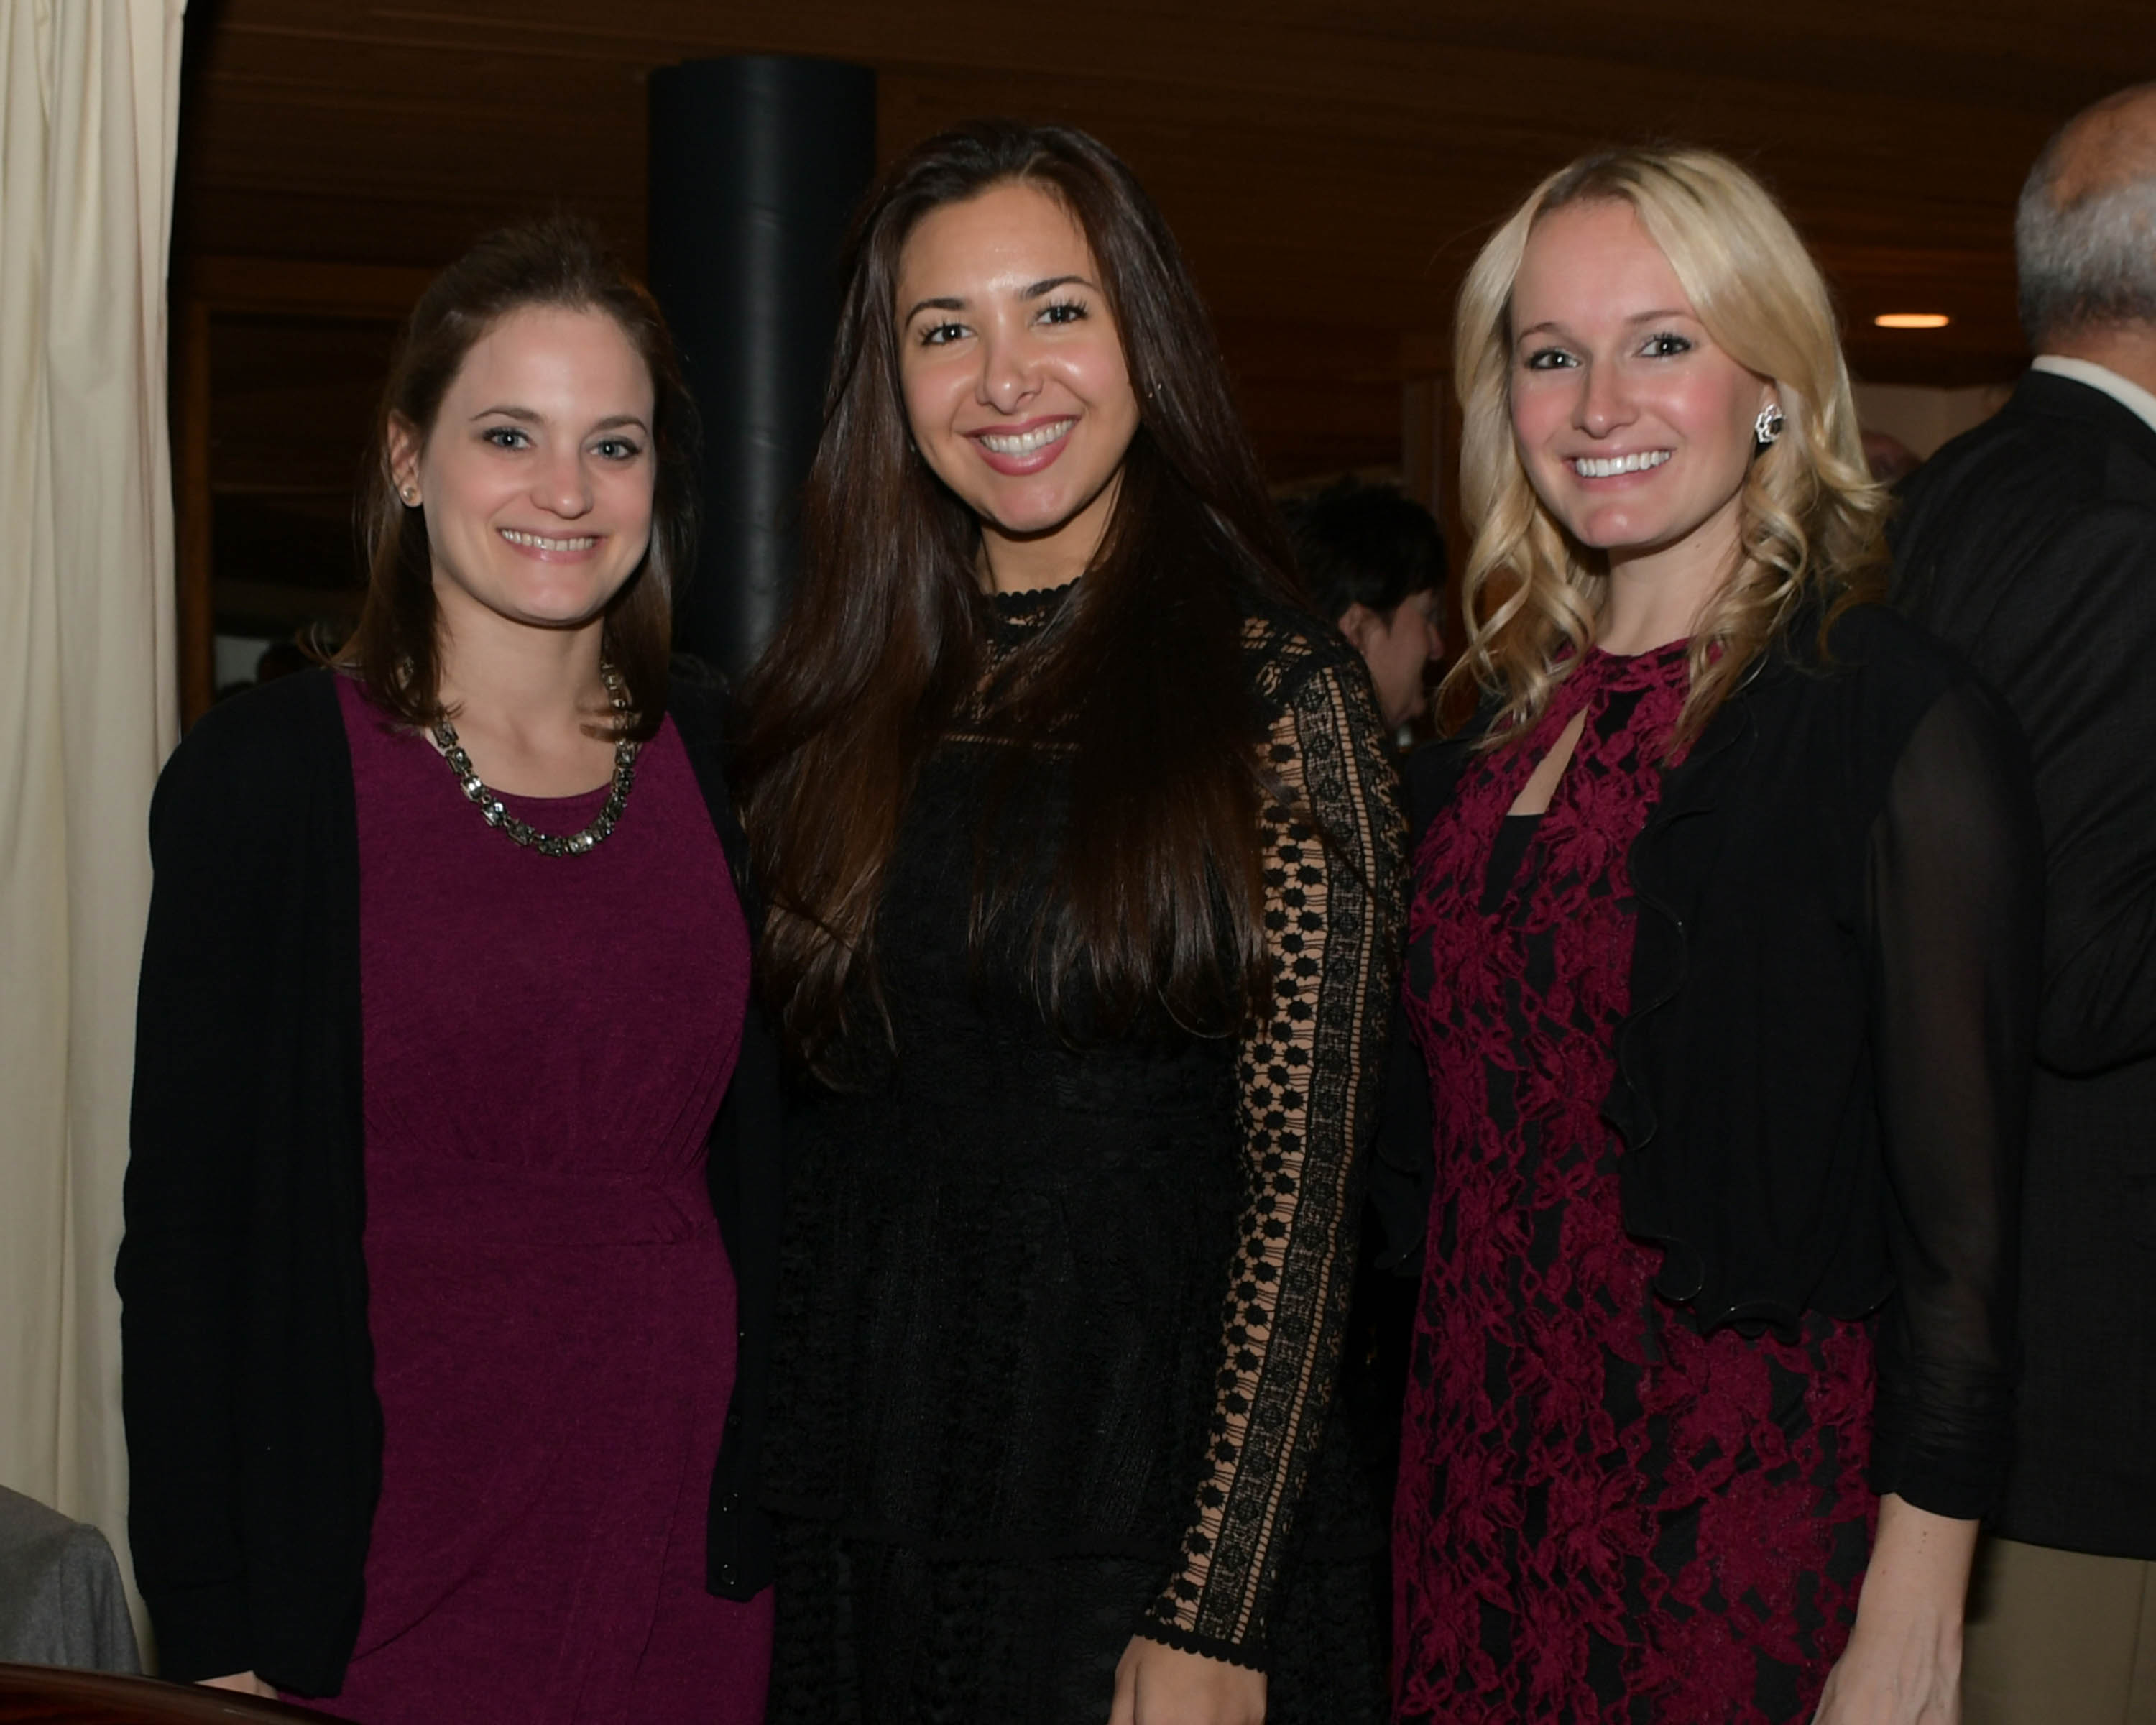 Vin Le Soir to benefit AIM Services, Inc. three women at AIM wine tasting